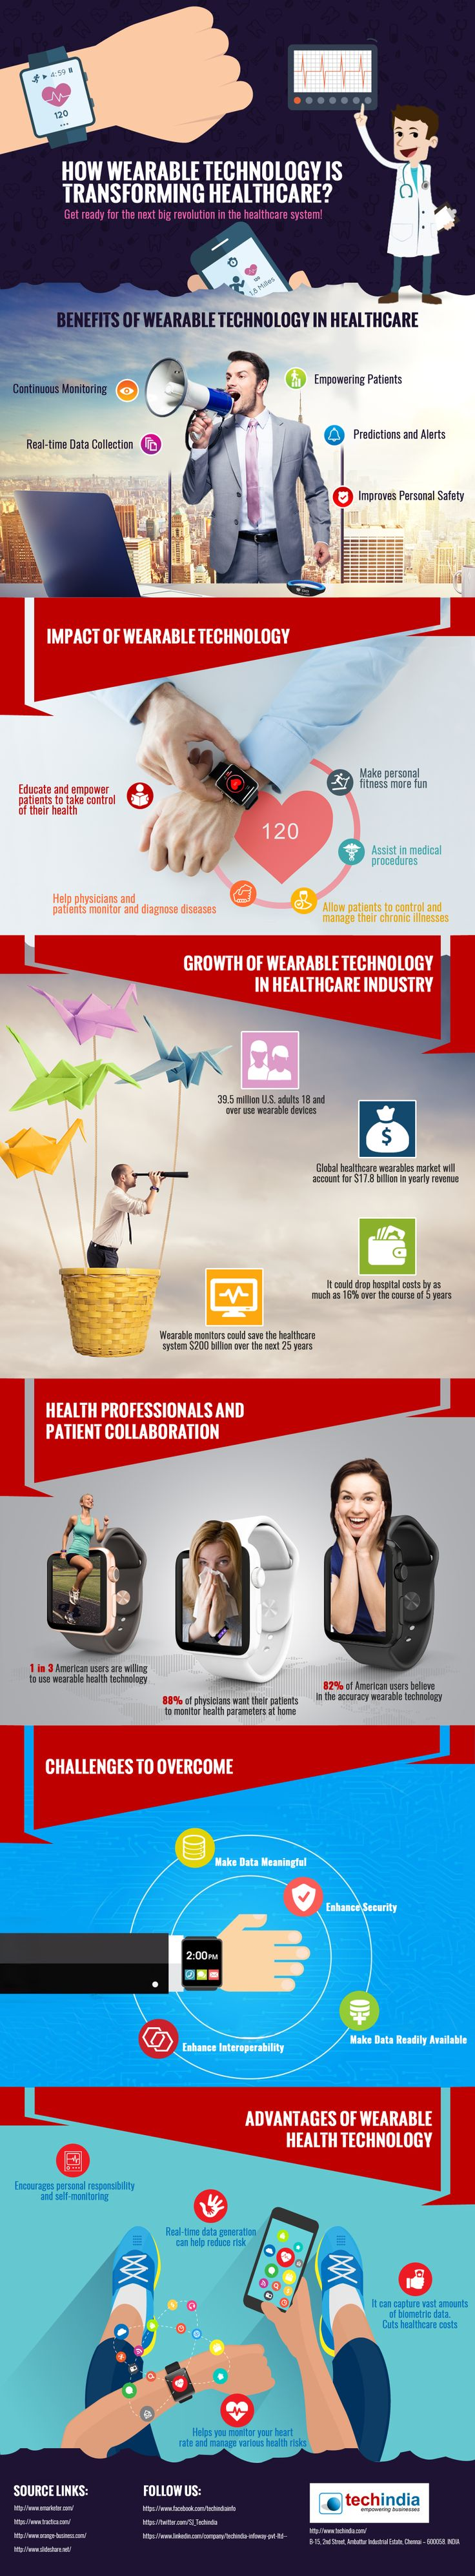 How Wearable Technology is Transforming Healthcare? #Infographic #Health…